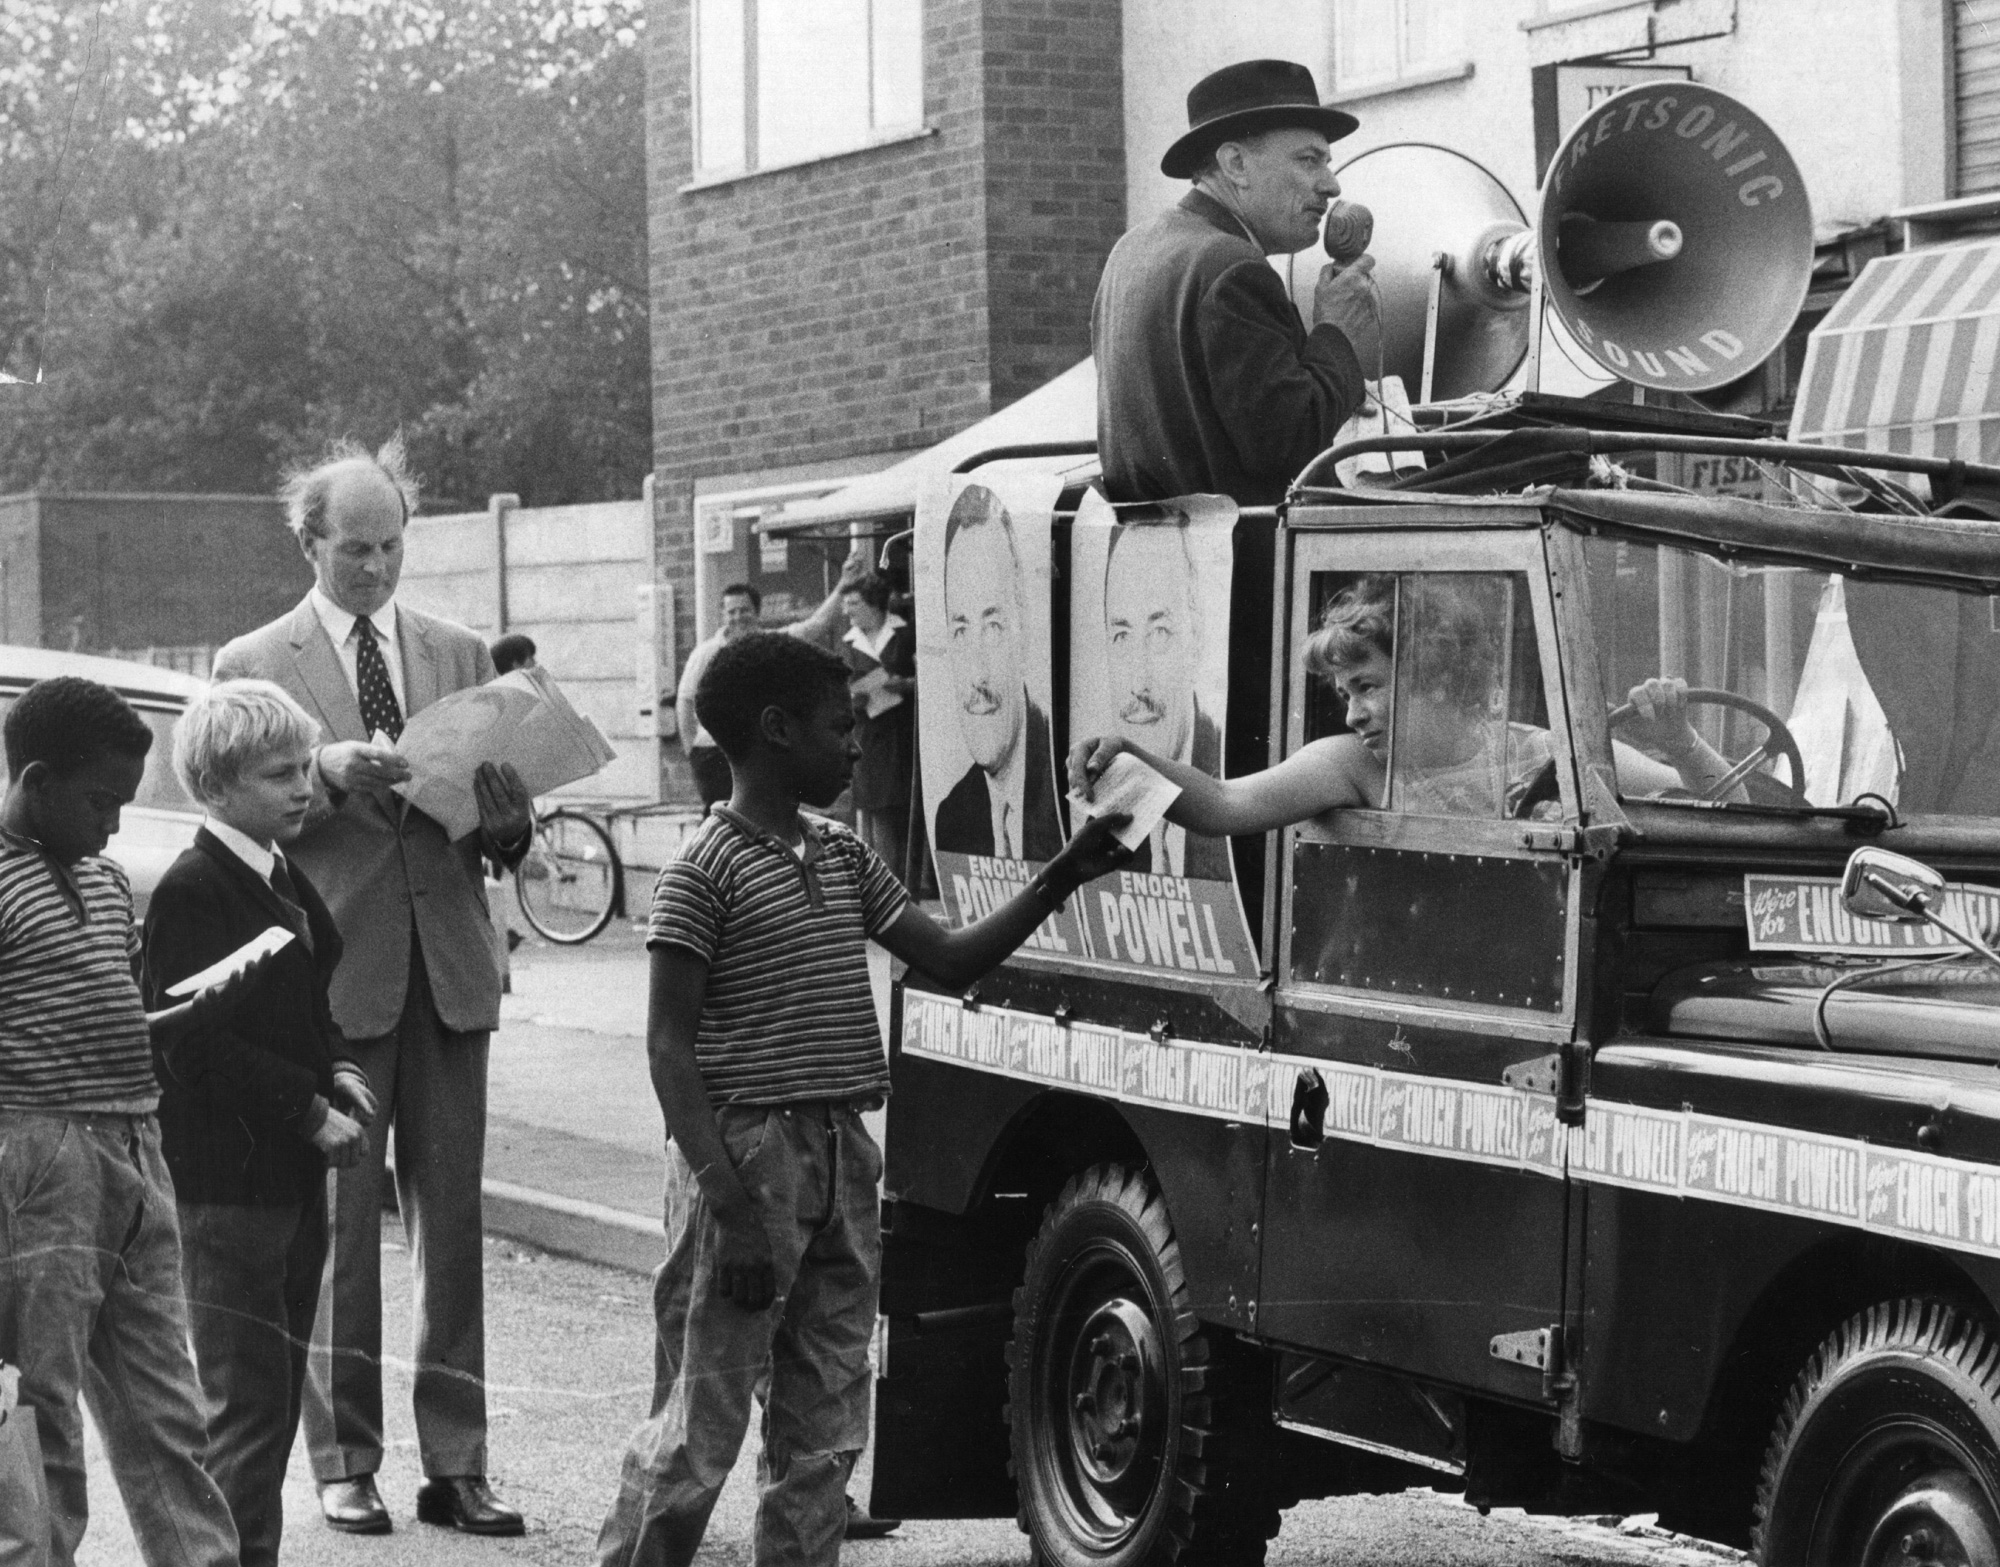 Photograph of Enoch Powell campaigning, 1970